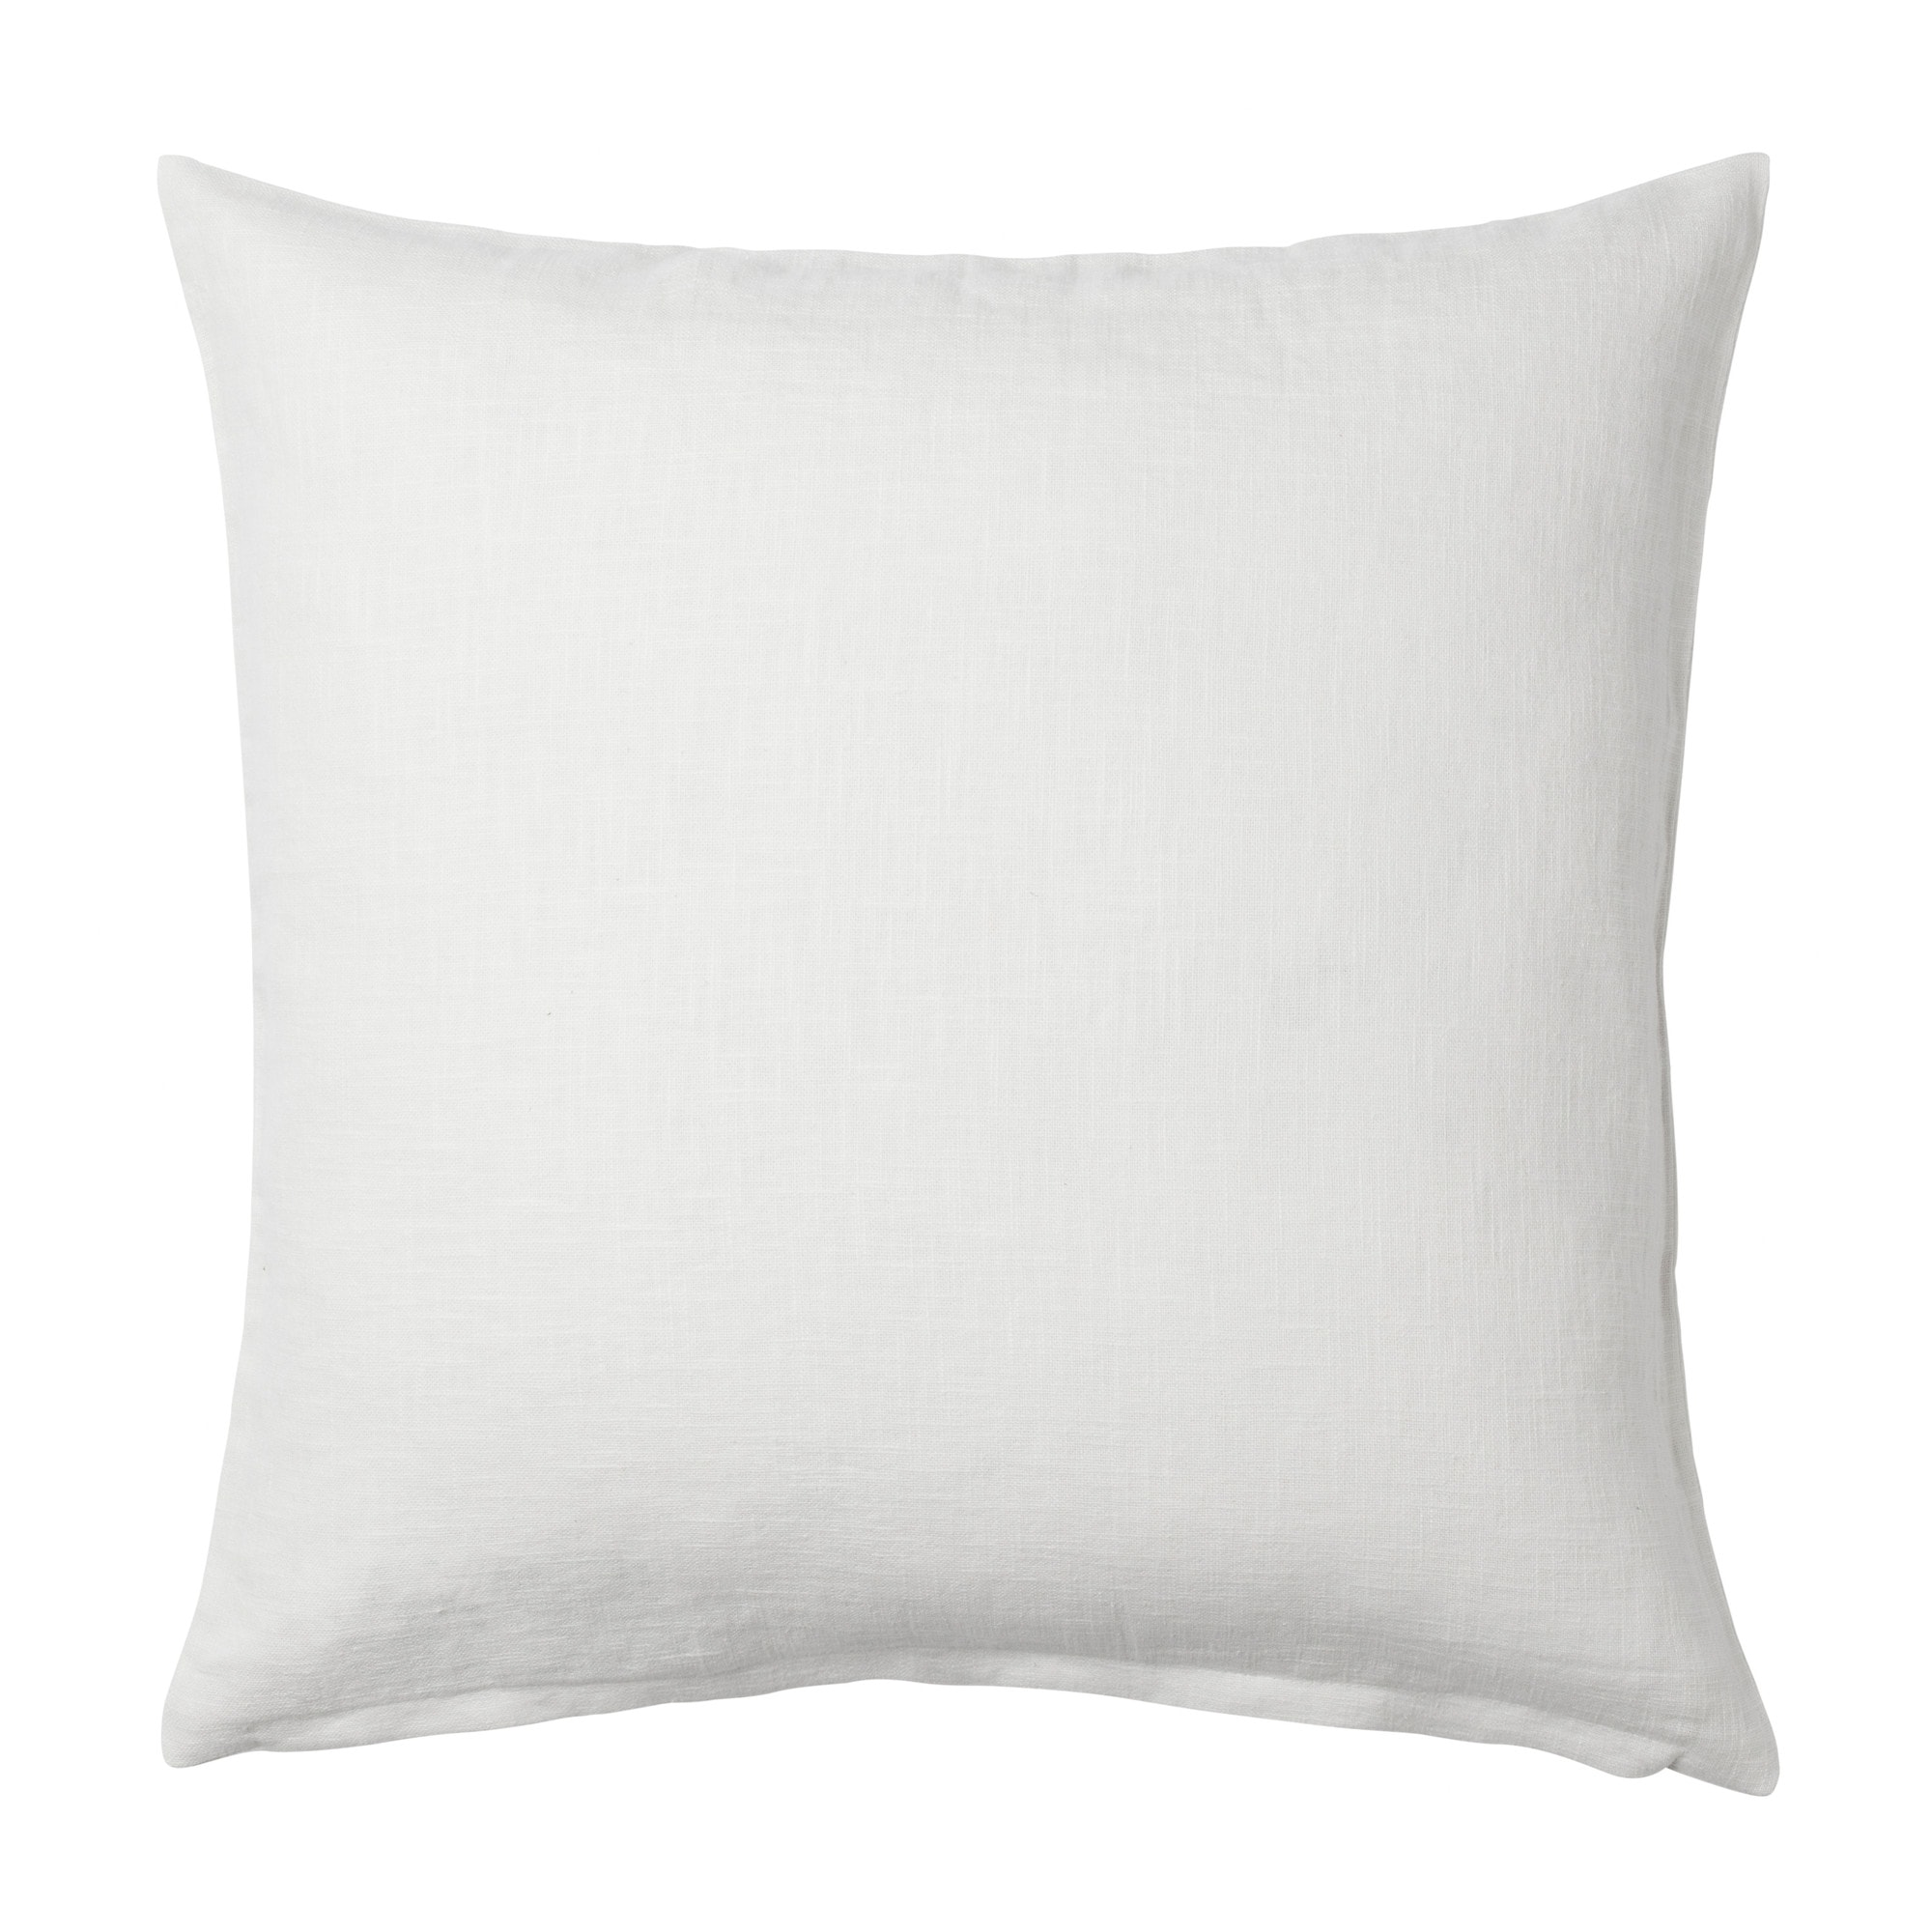 Decorative Throw Pillows Cushions Cushion Covers IKEA